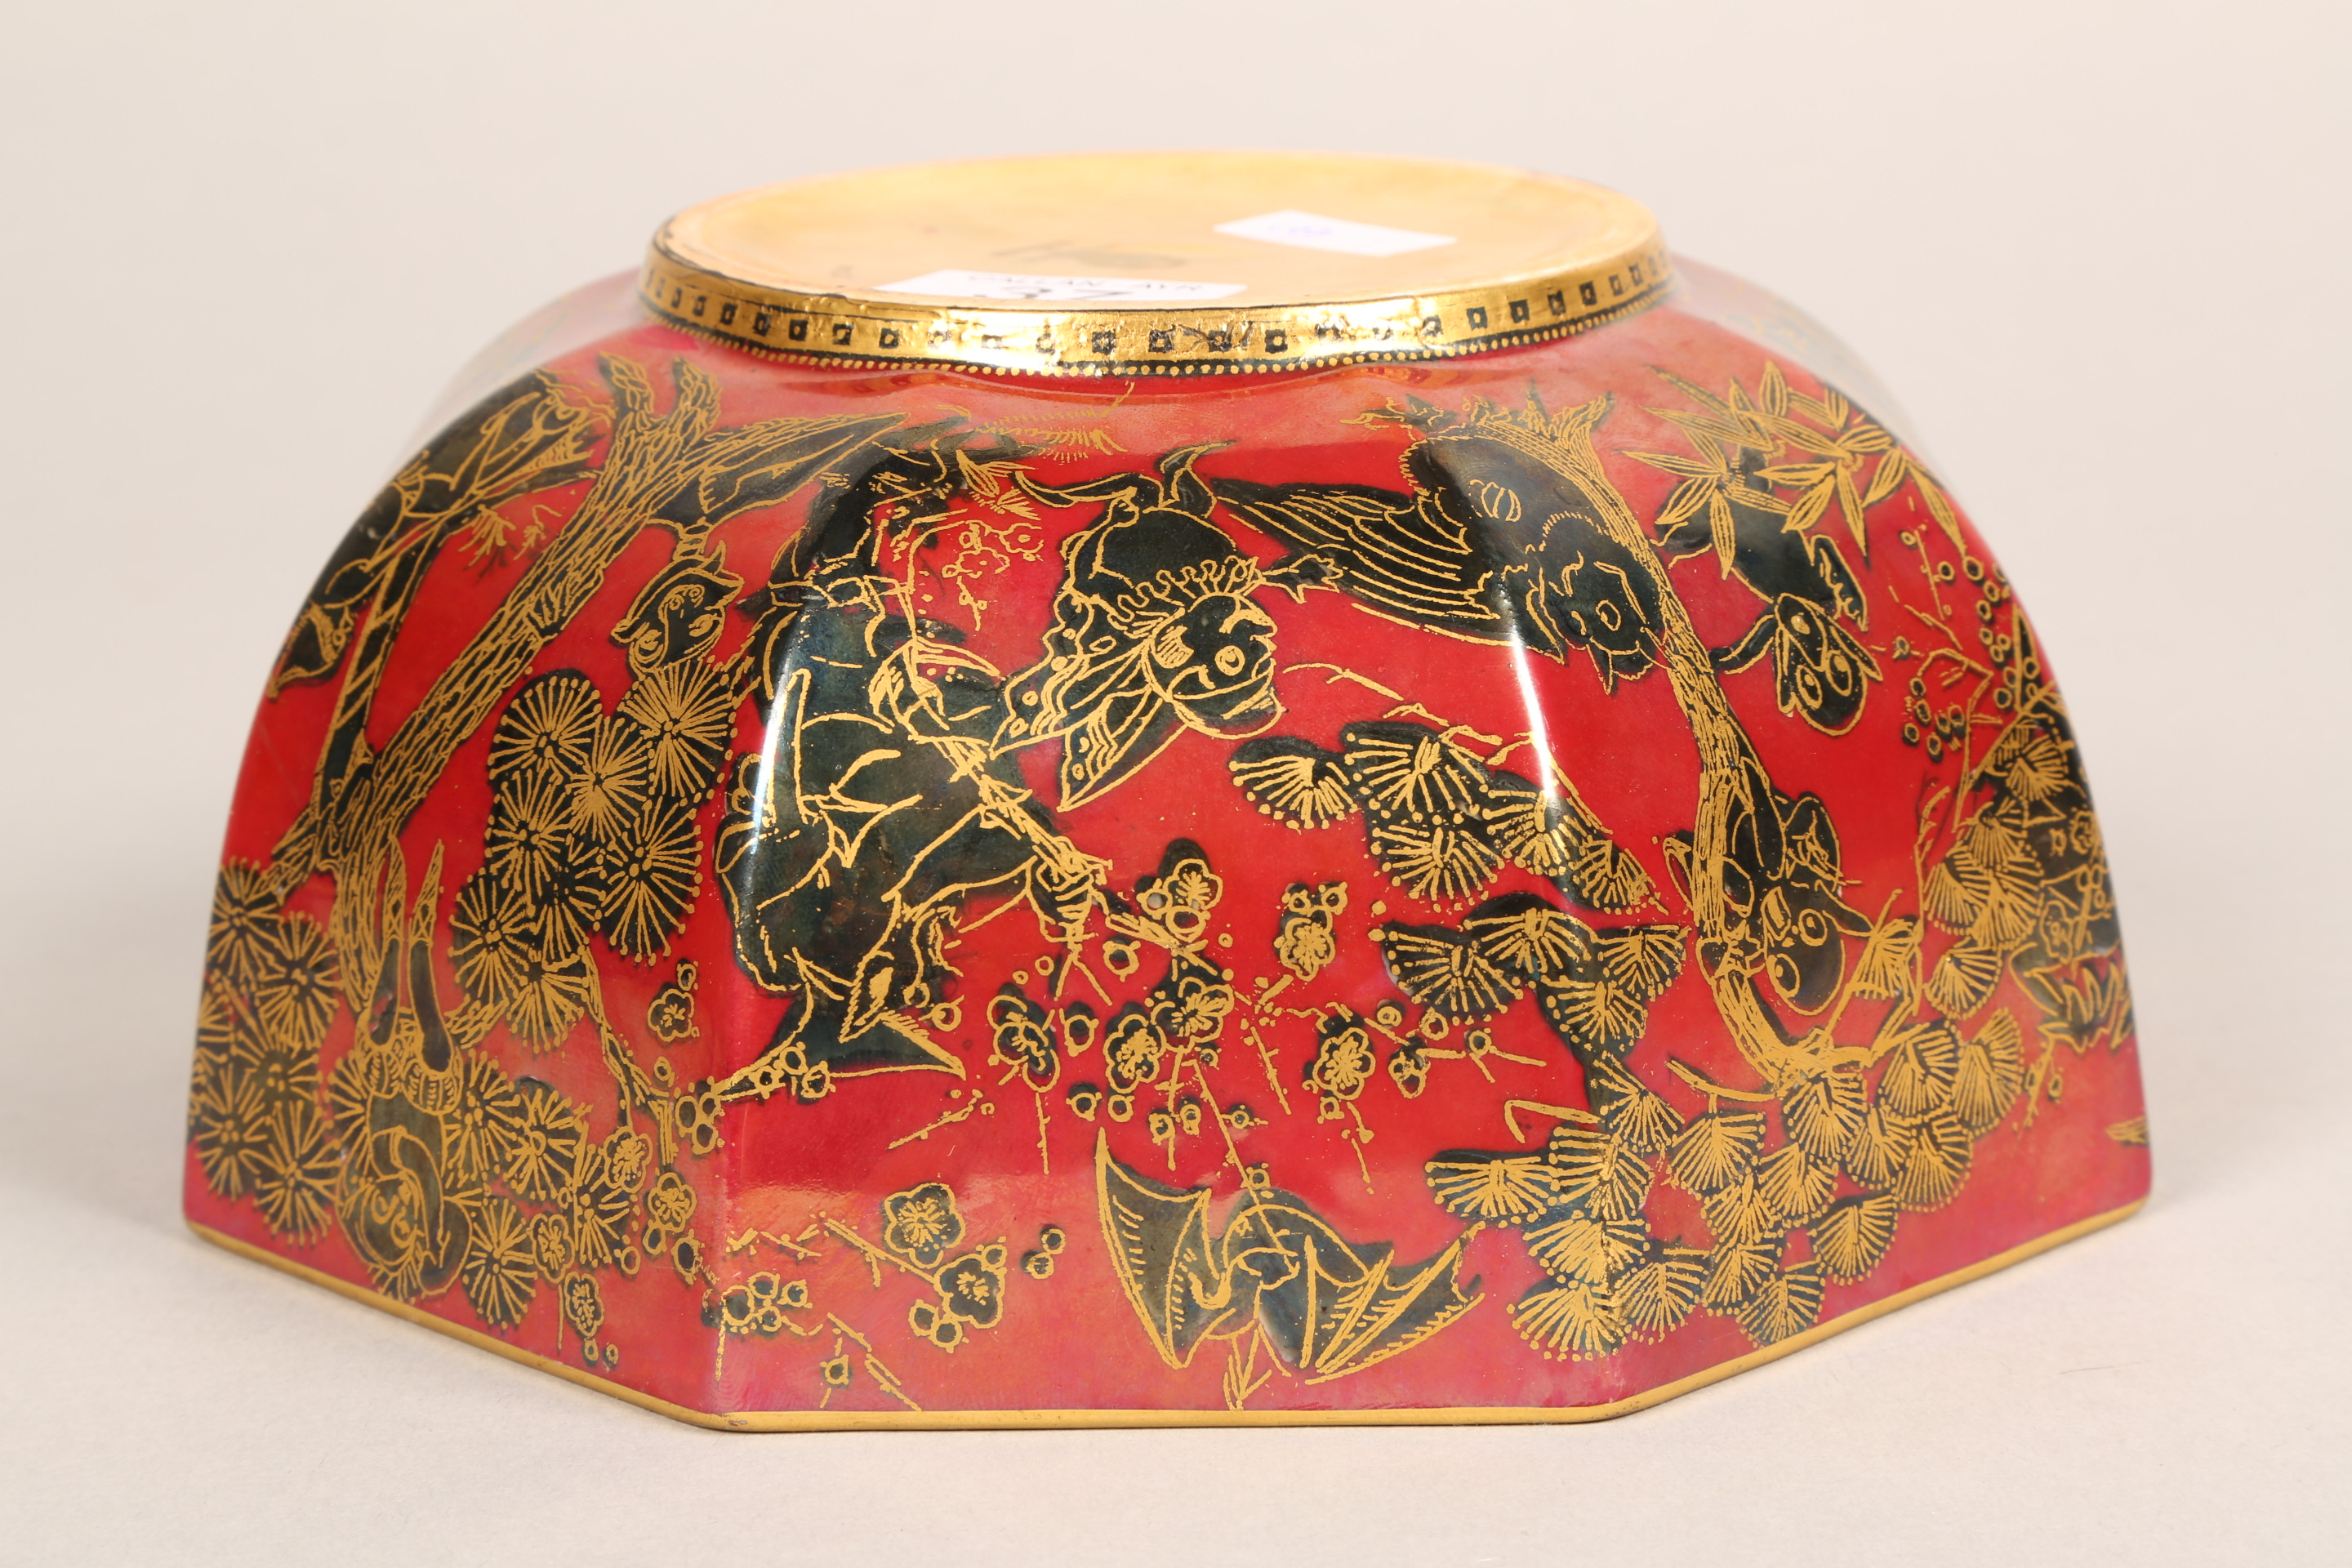 Wedgwood fairyland lustre bowl, by Daisy Makeig-Jones, octagonal form, decorated in the Firbolgs - Image 13 of 15